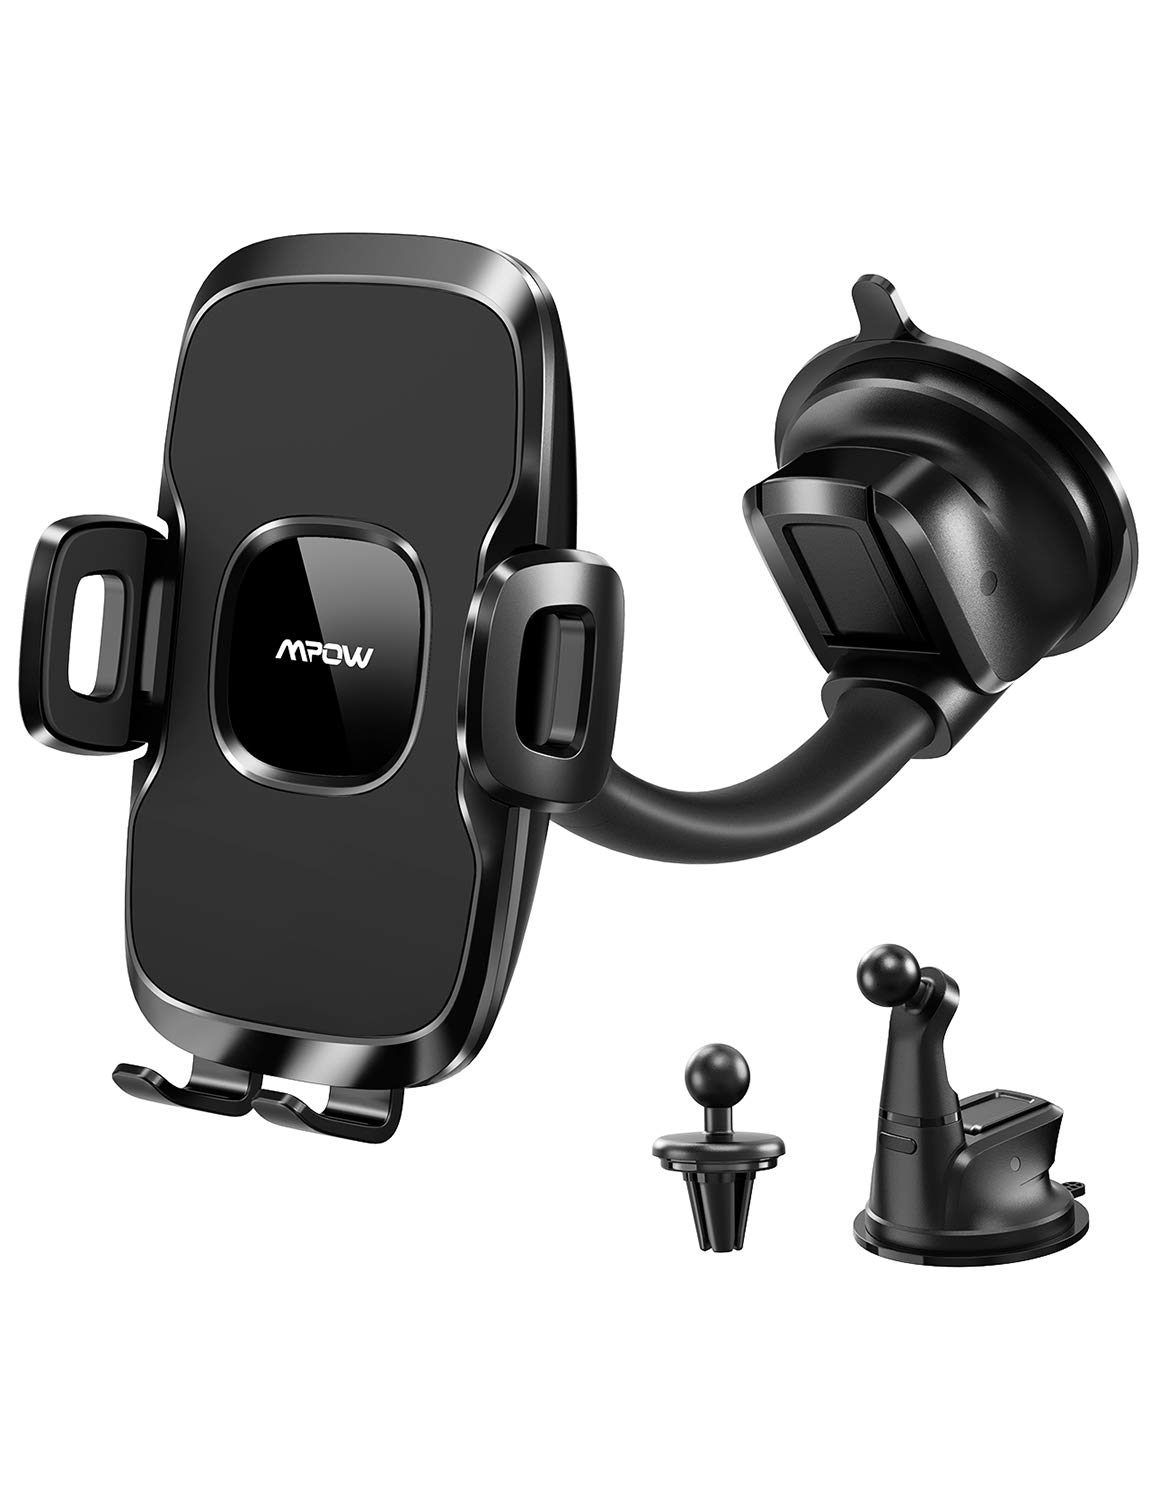 Mpow 045AB 3-In-1 Air Vent & Dashboard & Windshield Car Phone mount, Cell Phone Holder Compatible iPhone XS MAX/XS/XR/8/8 Plus/7/7 Plus, Samsung Galaxy S10/S9/S8, Google, Huawei, LG, One Plus and More